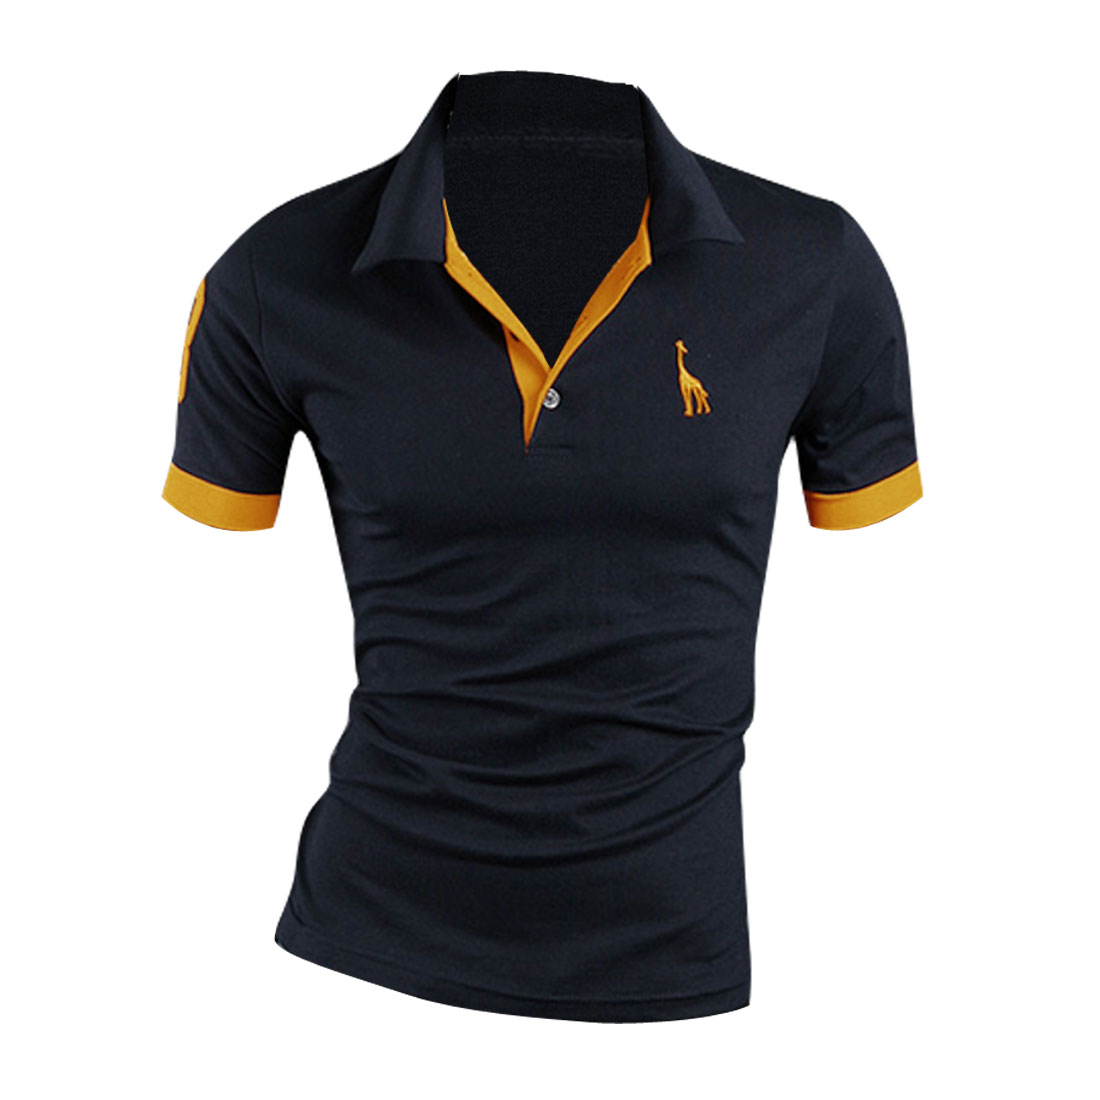 Man Buttons Upper Front Polo Number Pattern Tops Shirt Dark Blue M